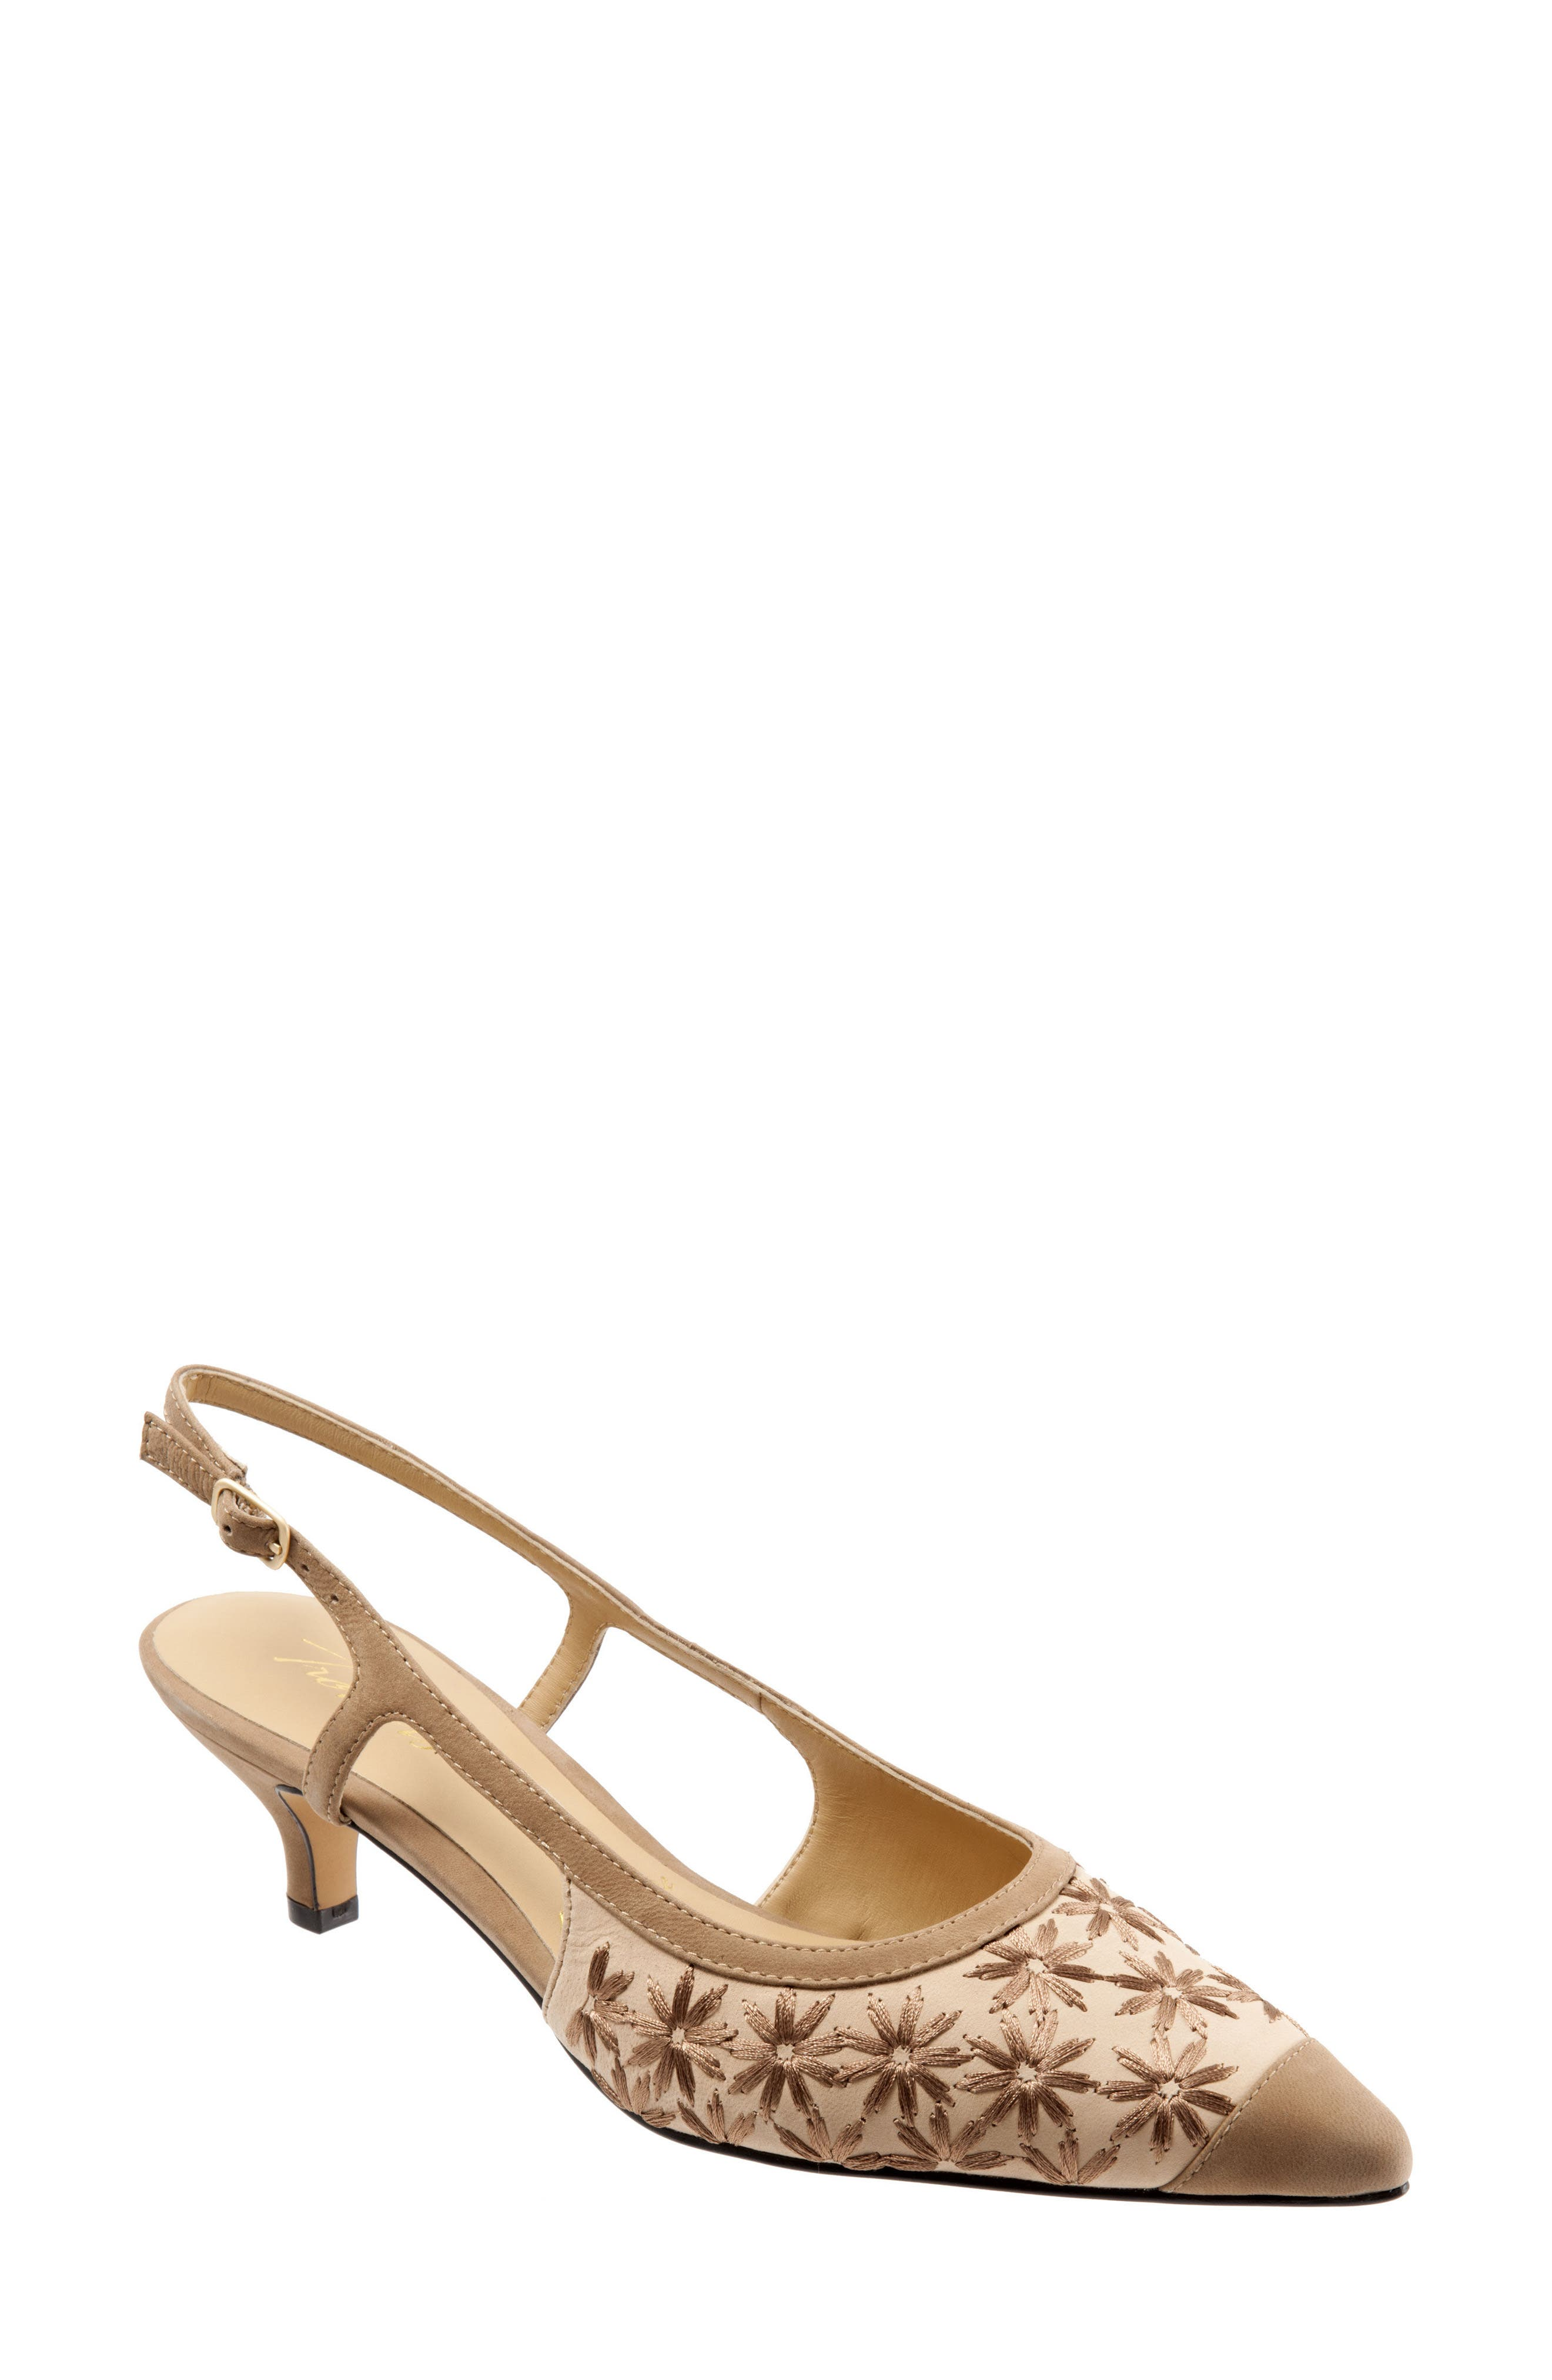 'Kimberly' Woven Leather Slingback Pump,                         Main,                         color, Dark Tan/ Sand/ Bronze Leather